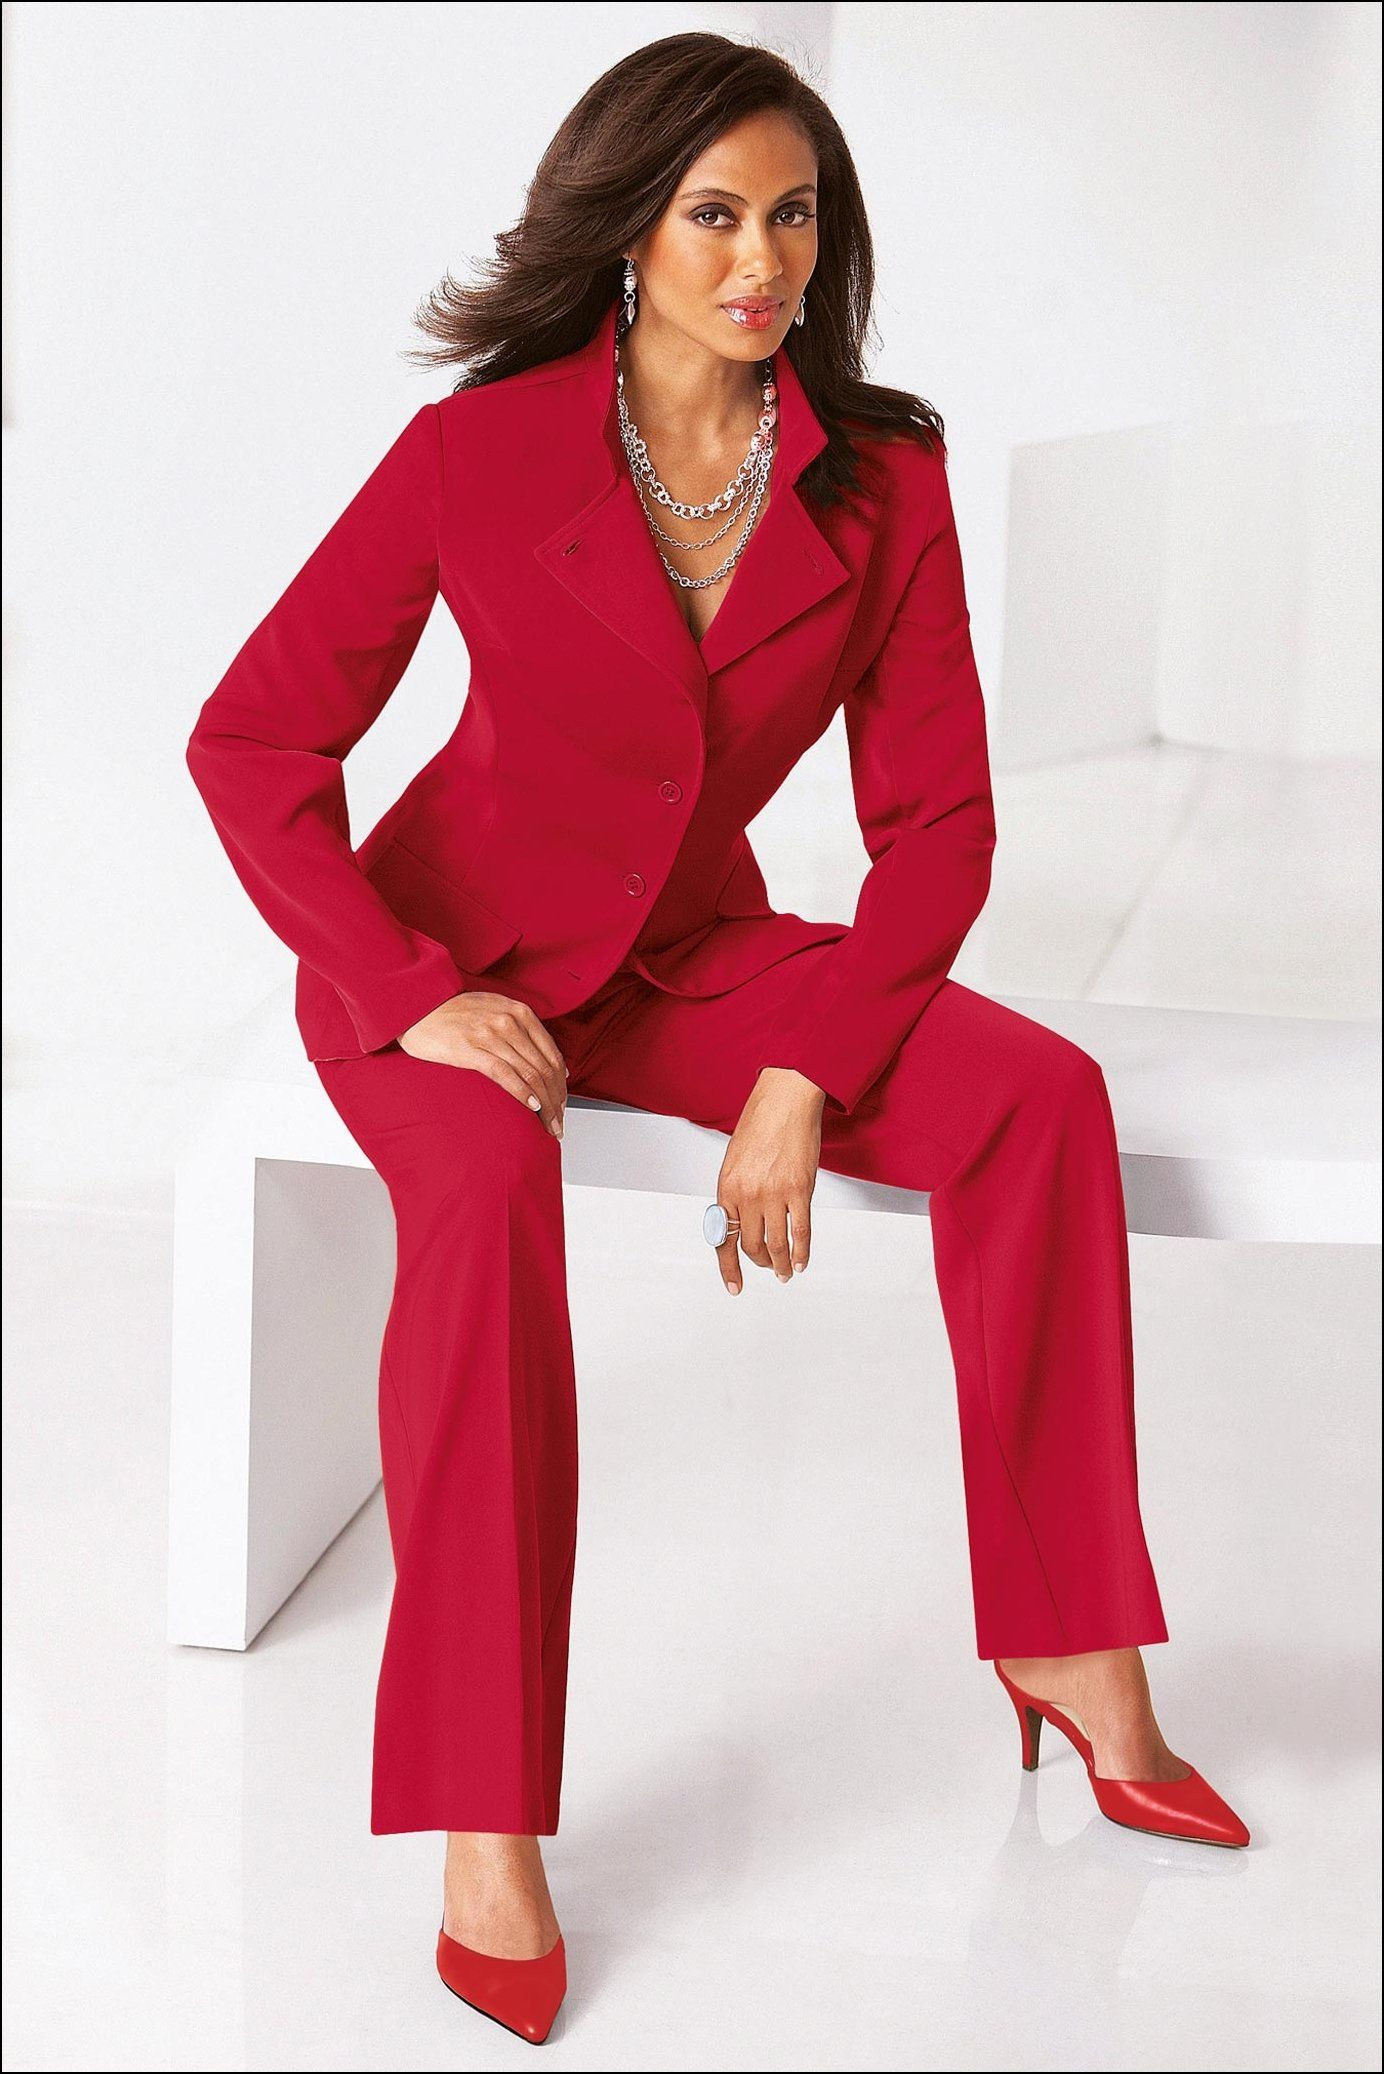 FREE SHIPPING AVAILABLE! Shop reformpan.gq and save on Red Suits & Suit Separates.